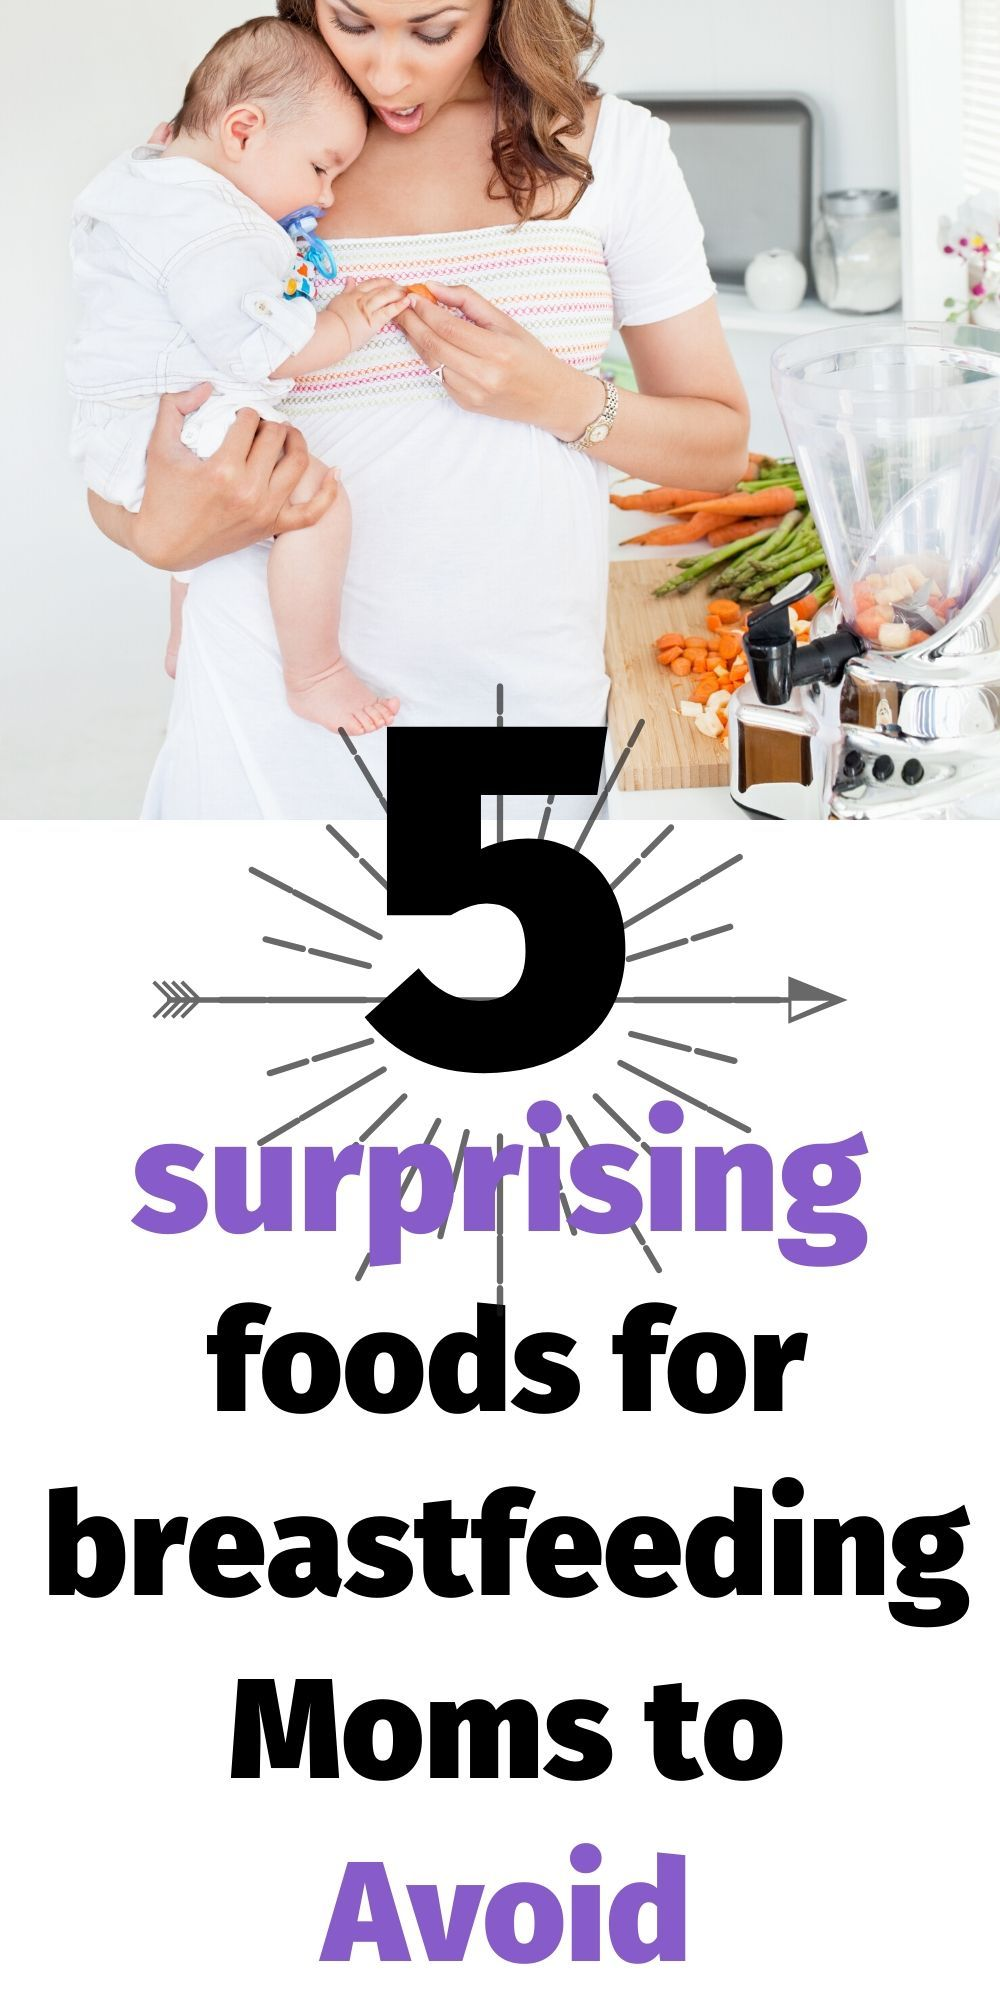 5 Surprising Foods To Avoid While Breastfeeding For A Happier Baby Breastfeeding Foods Diet For Breastfeeding Moms Dieting While Breastfeeding